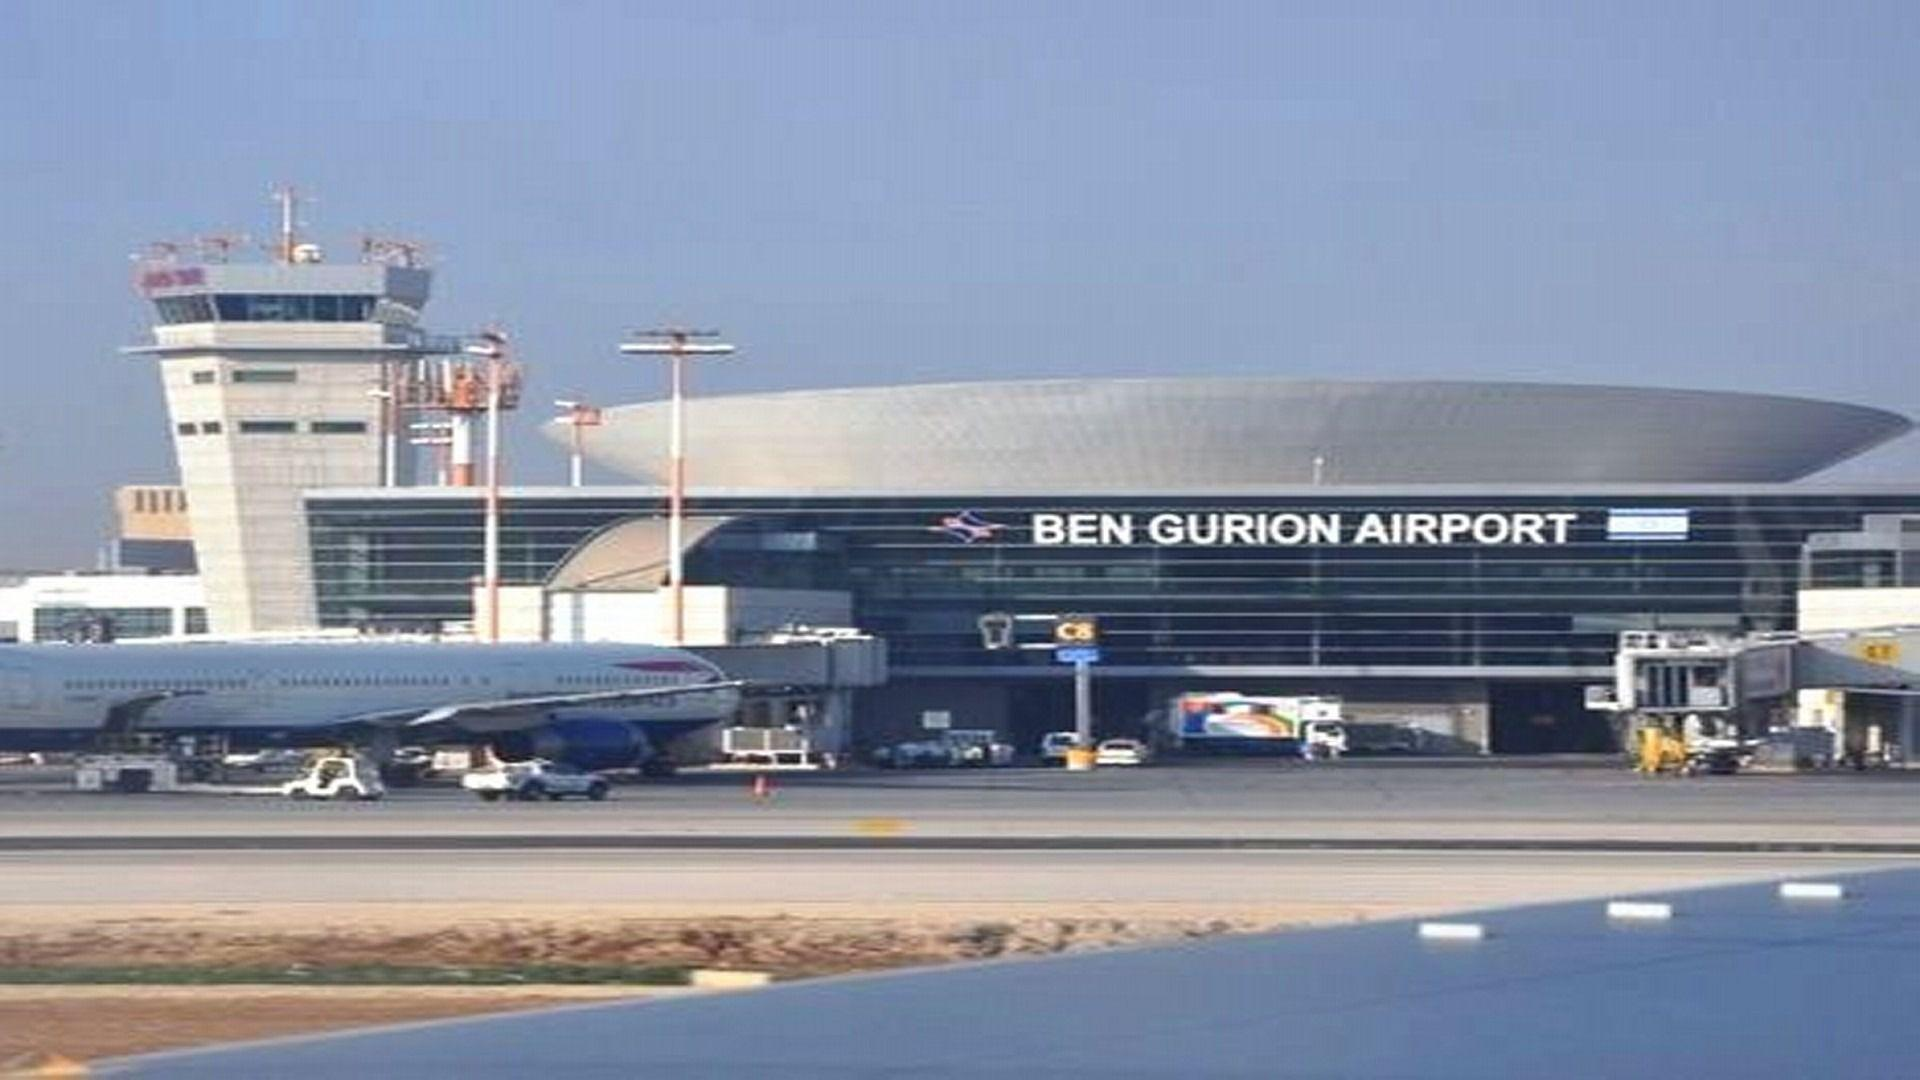 Israel Ben Gurion airport passenger traffic up 11% in January